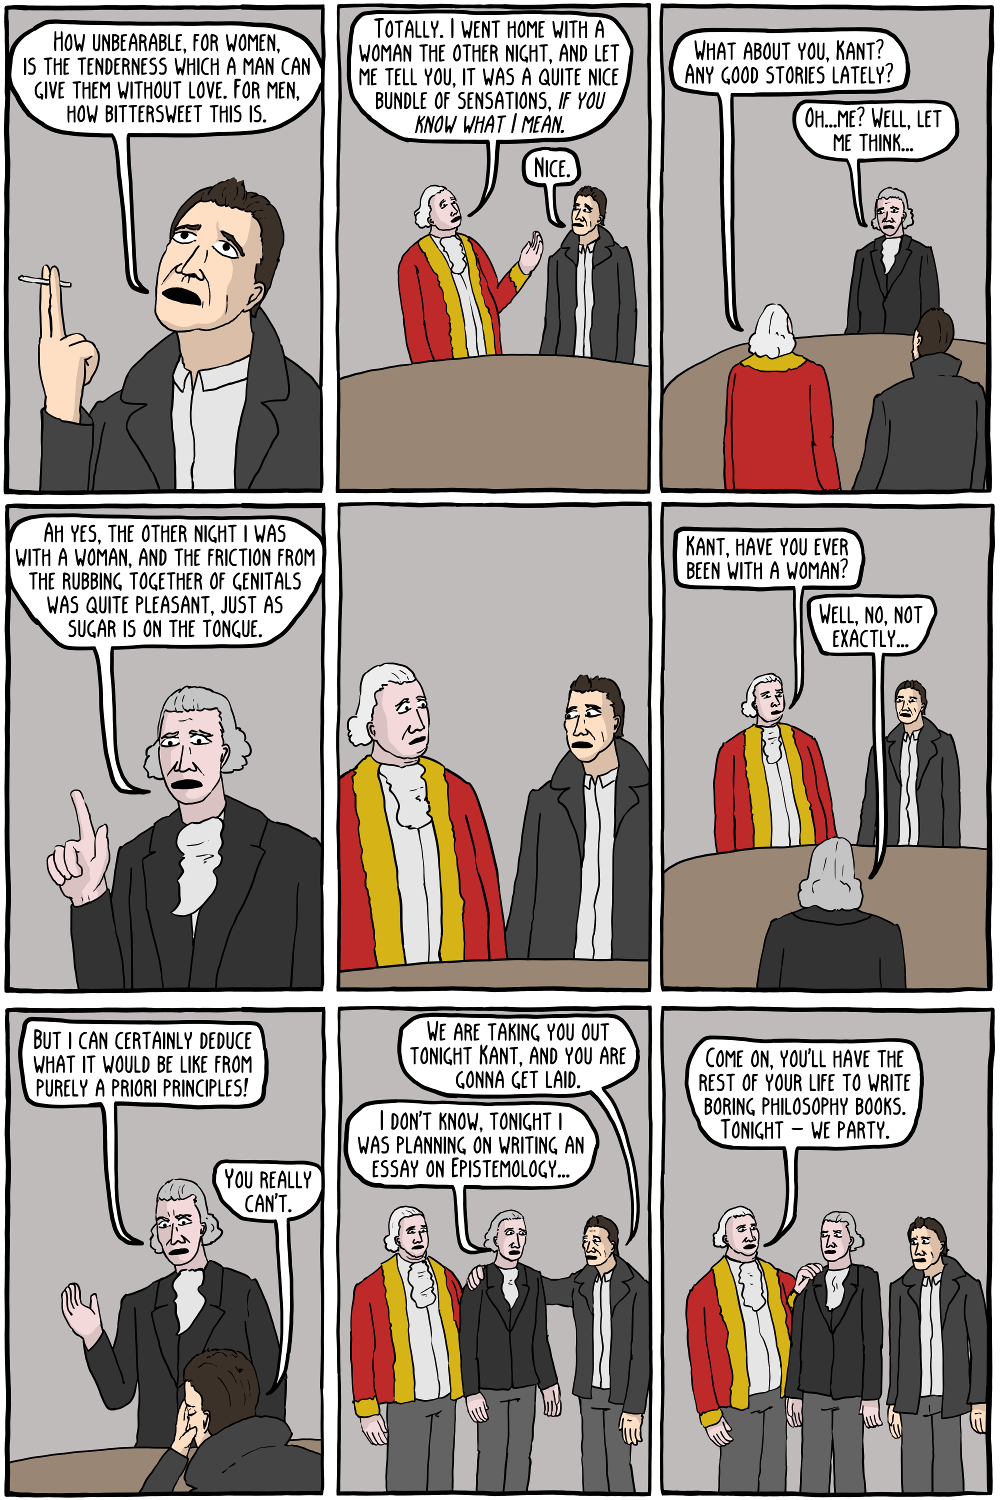 david hume existential comics immanuel kant the 40 year old virgin